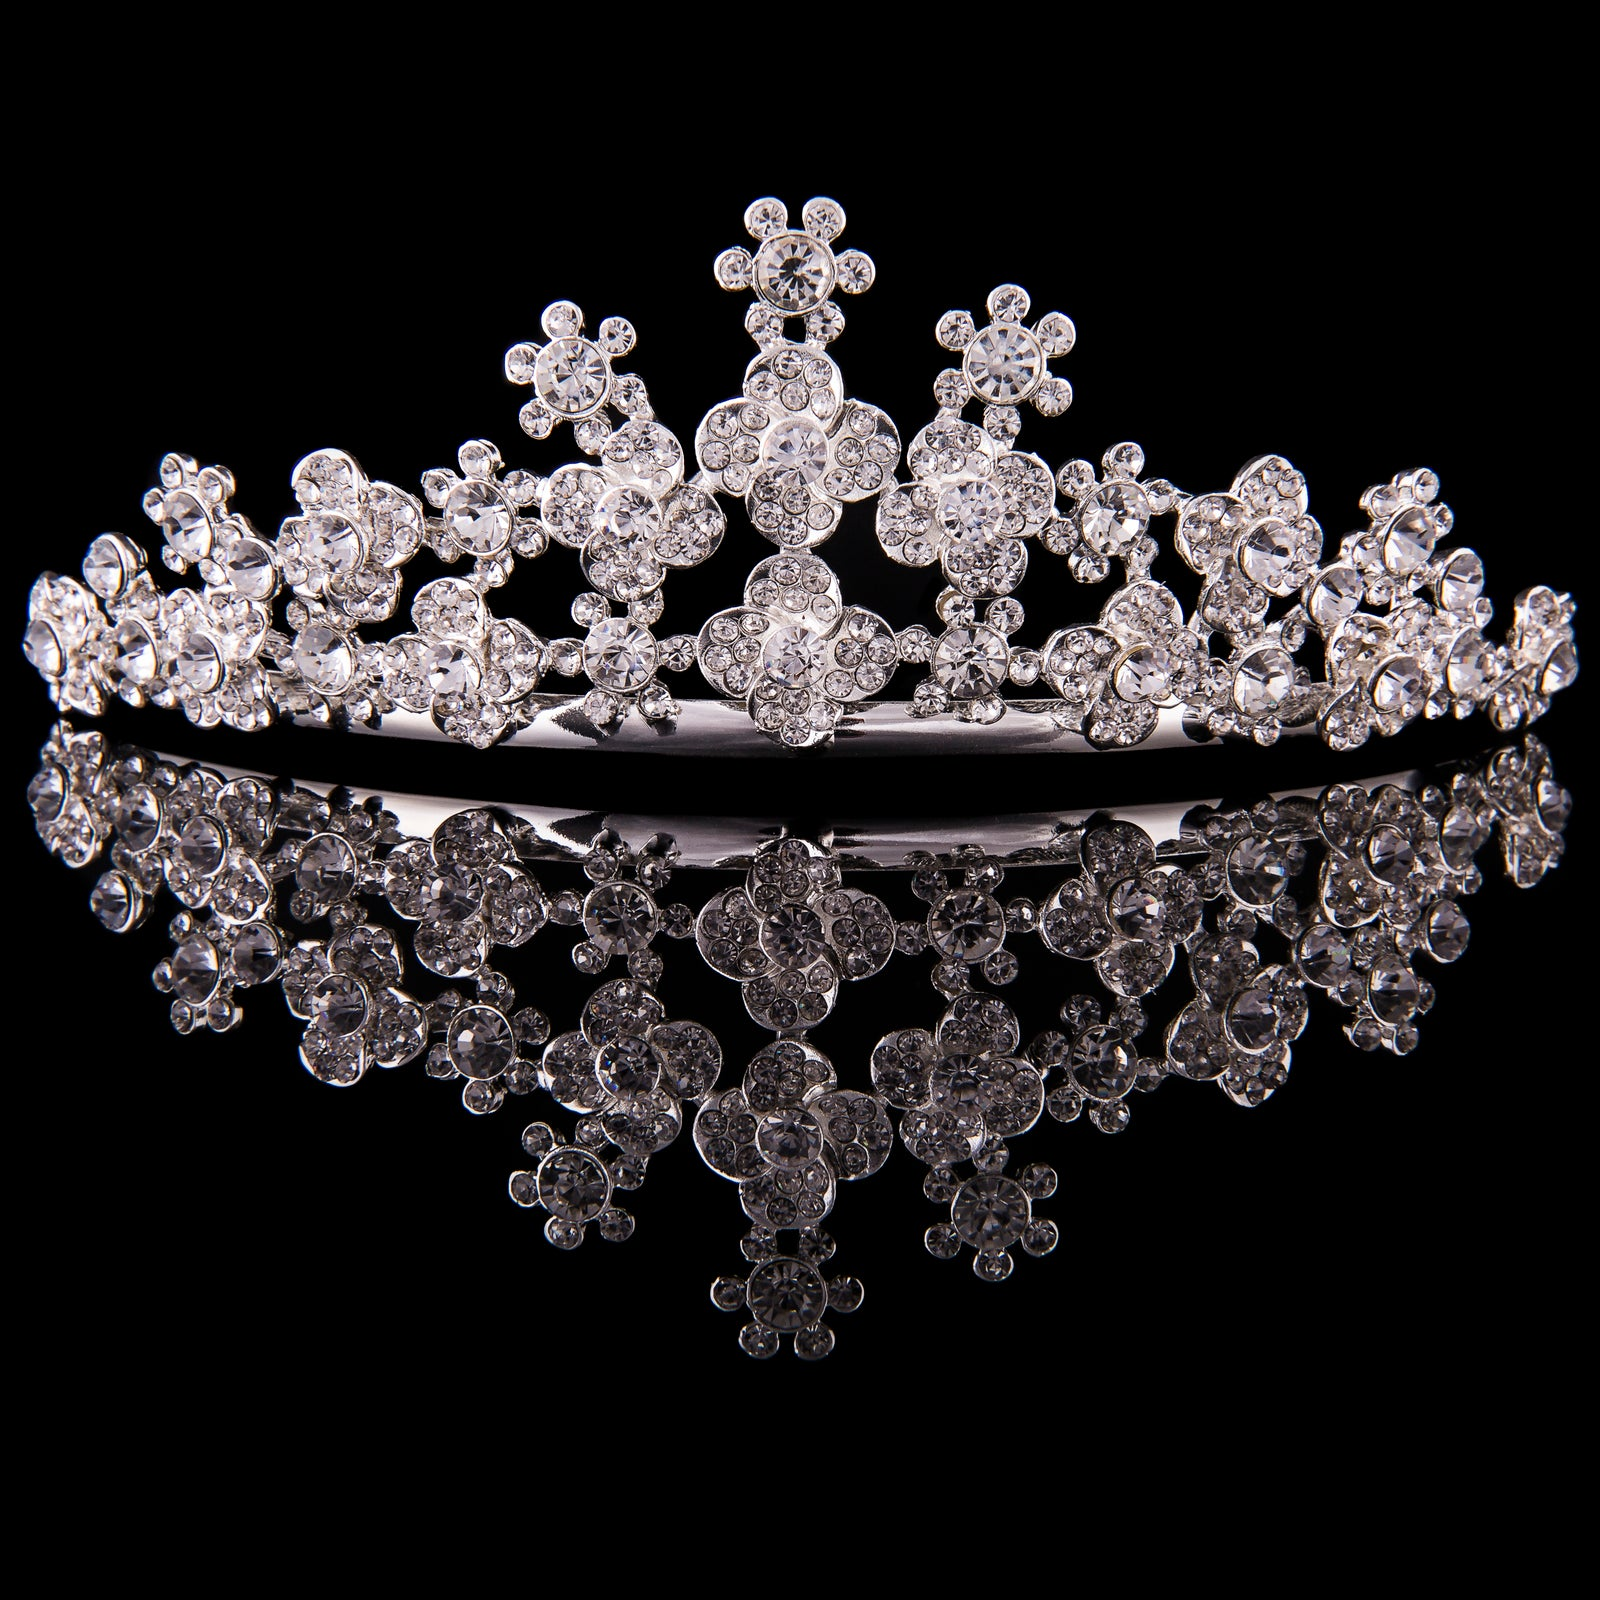 MAD ALLY LARGE FLORAL TIARA H35958